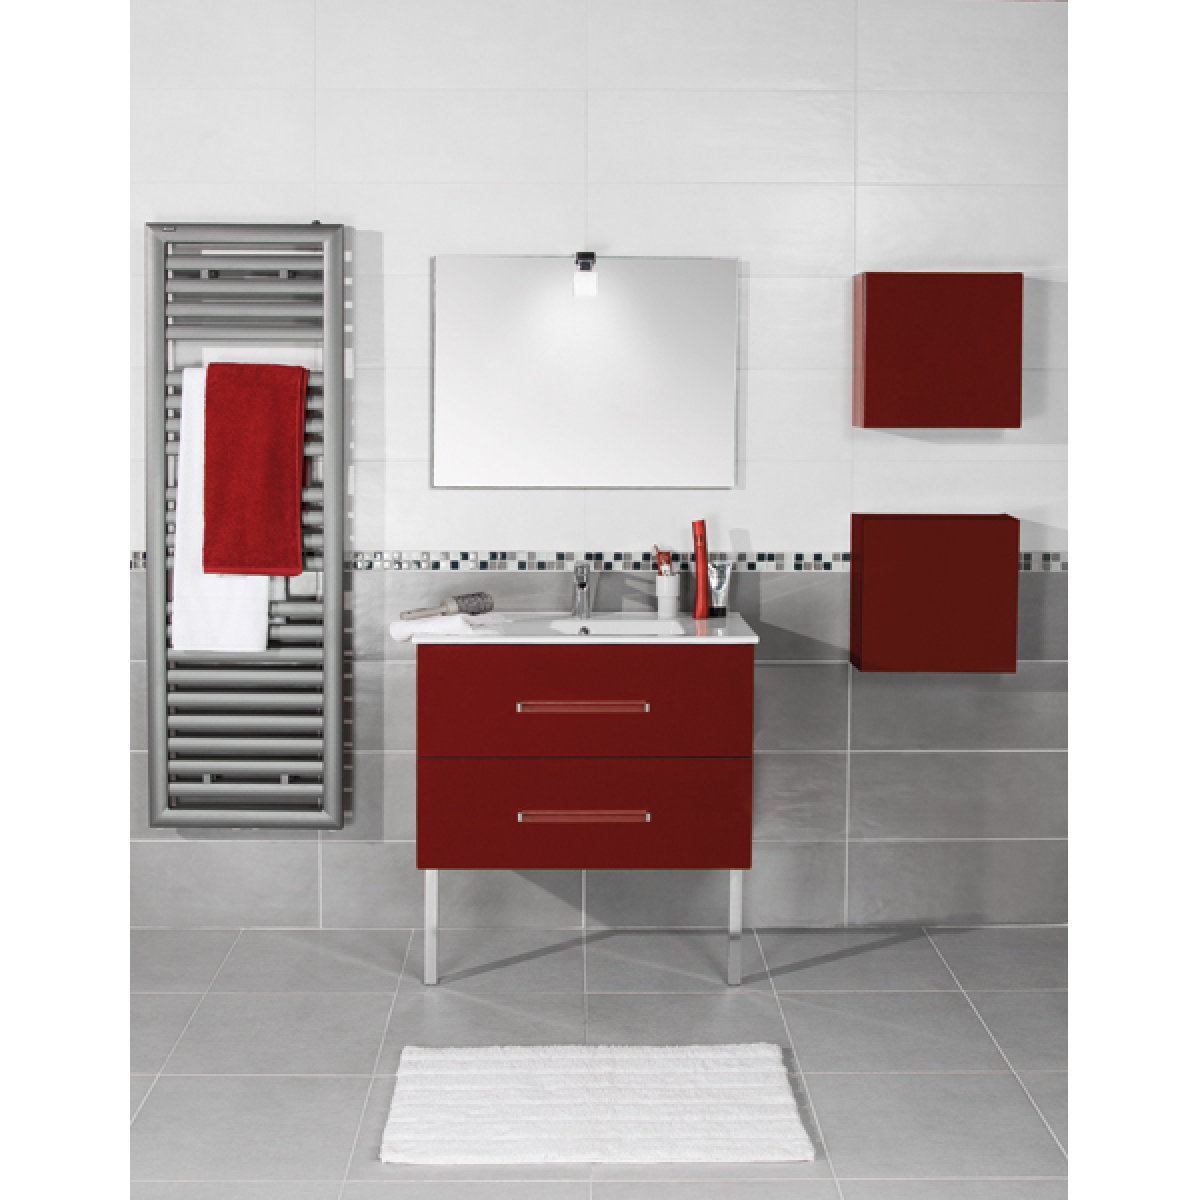 Meuble pep 39 s 80cm 2 tiroirs rouge alterna rennes 35920 for Meuble rouge